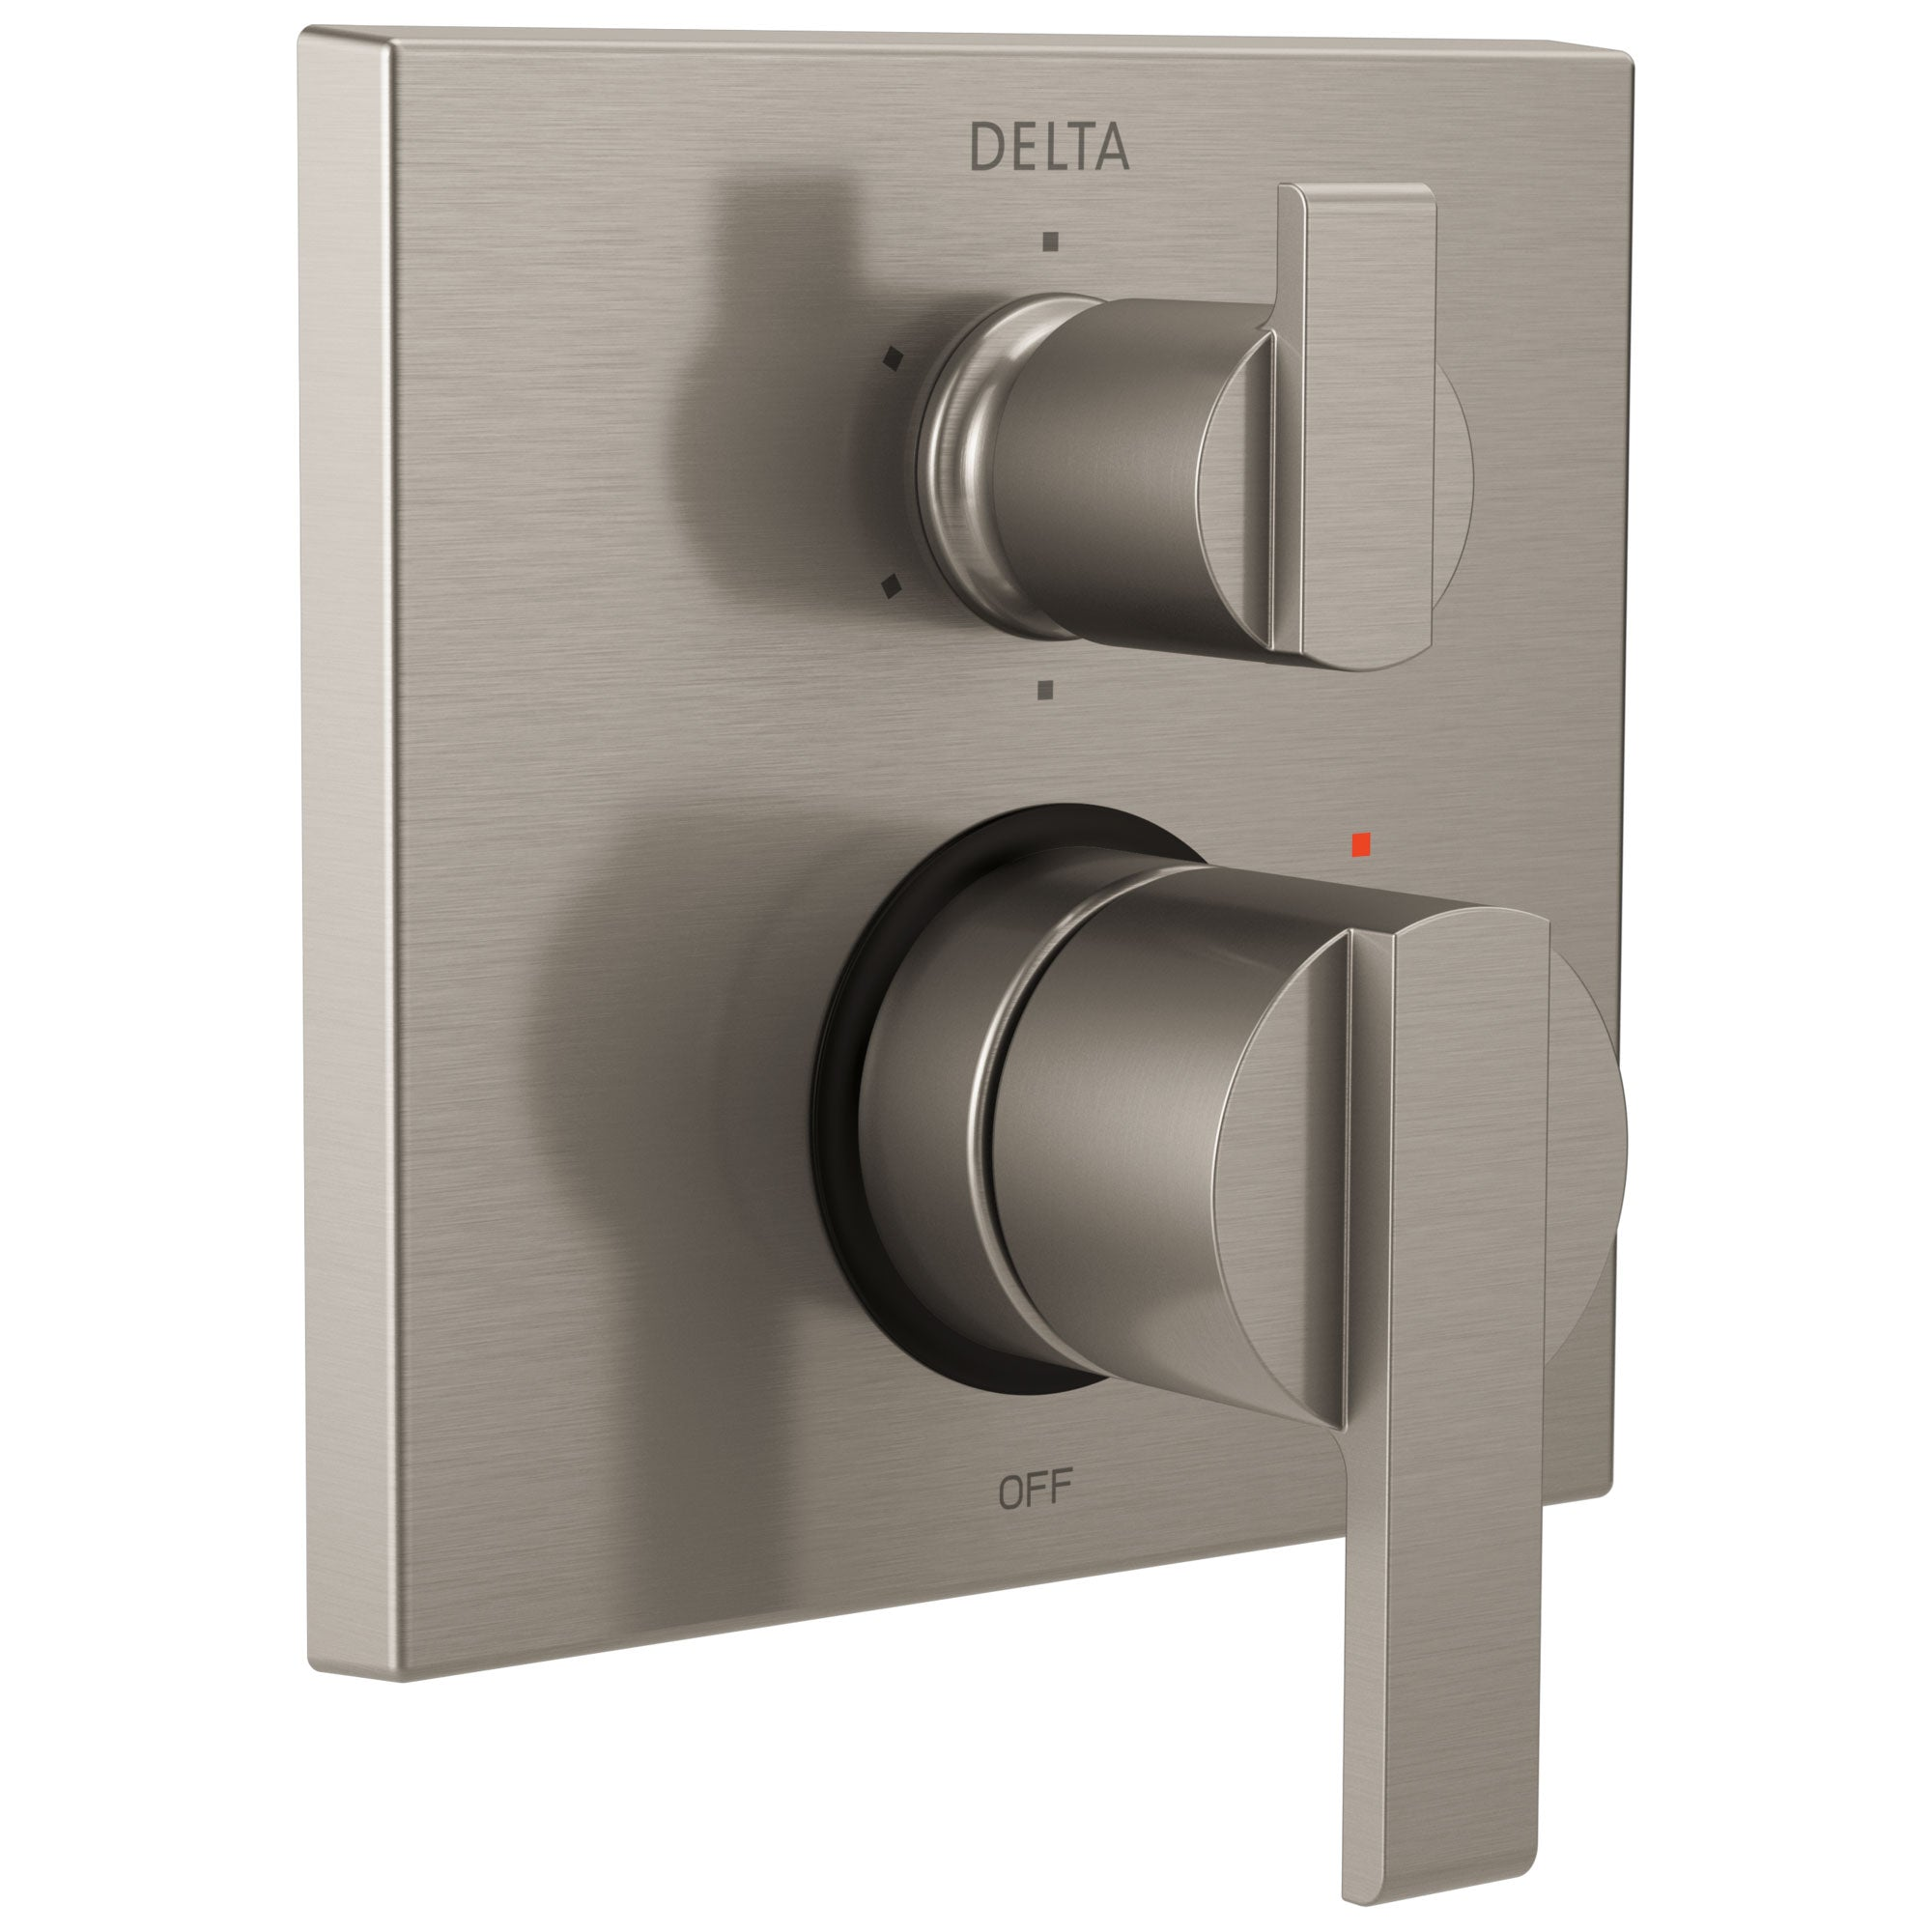 Delta Ara Collection Stainless Steel Finish Modern Shower Faucet Control Handle with 6-Setting Integrated Diverter Trim (Requires Valve) DT24967SS